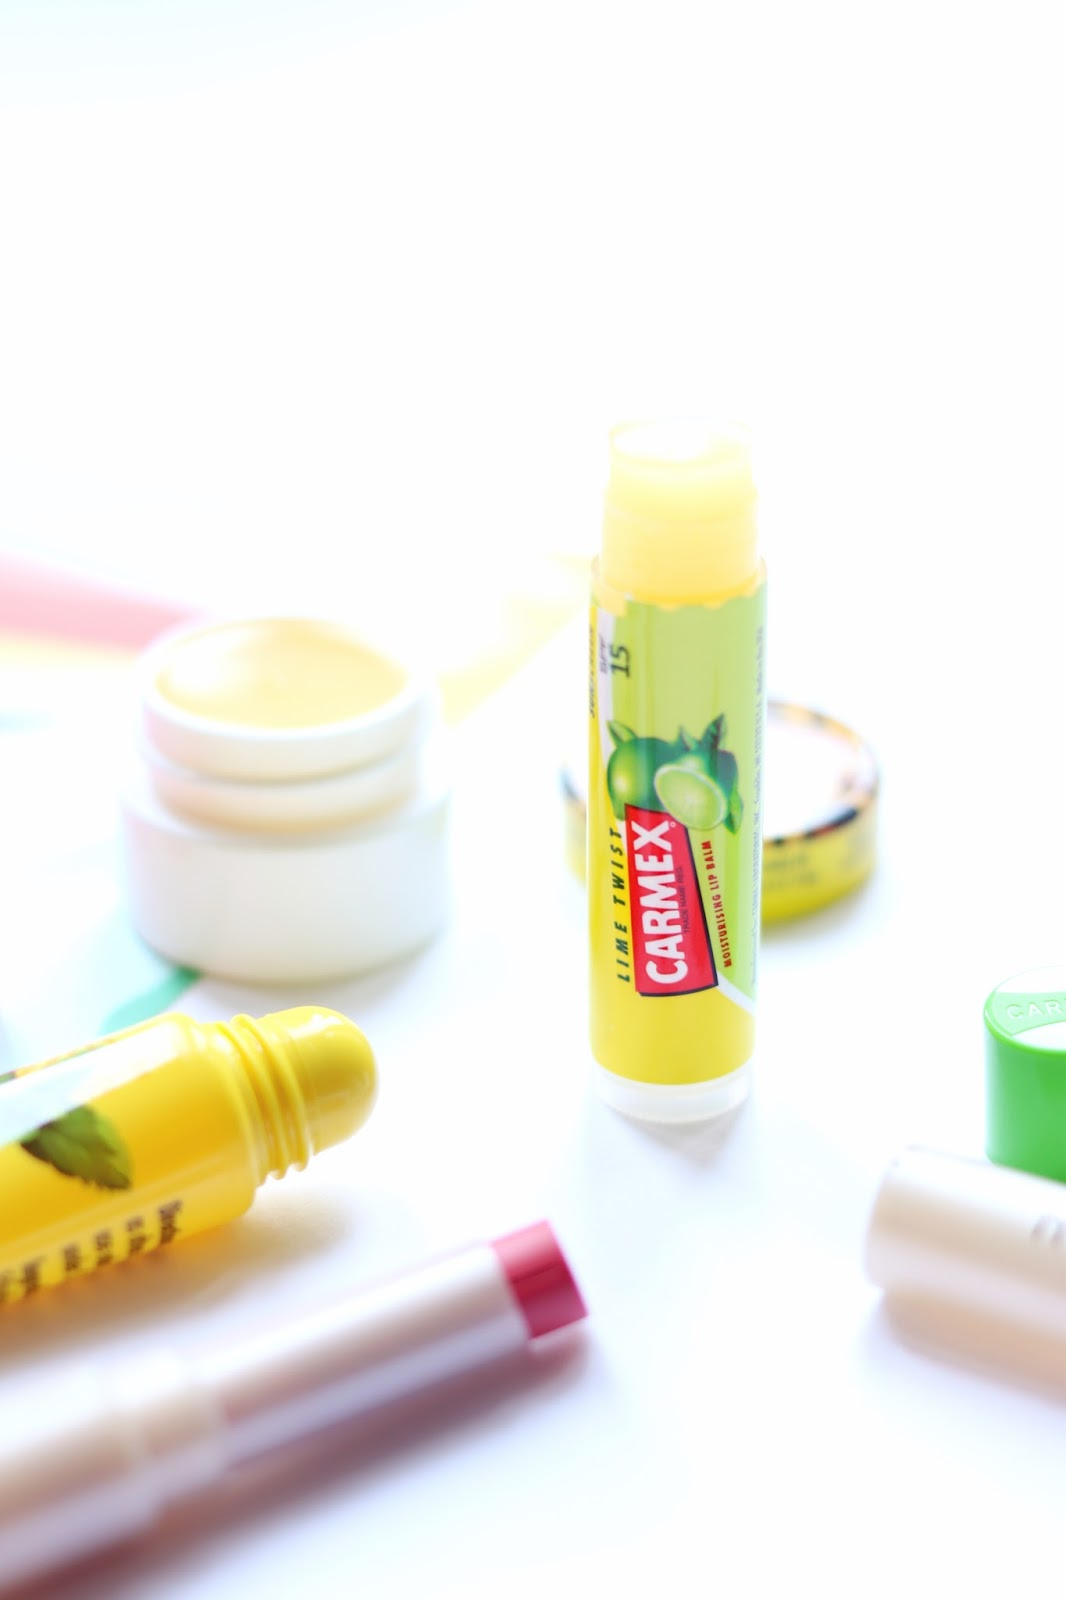 Carmex Lime Lip Balm